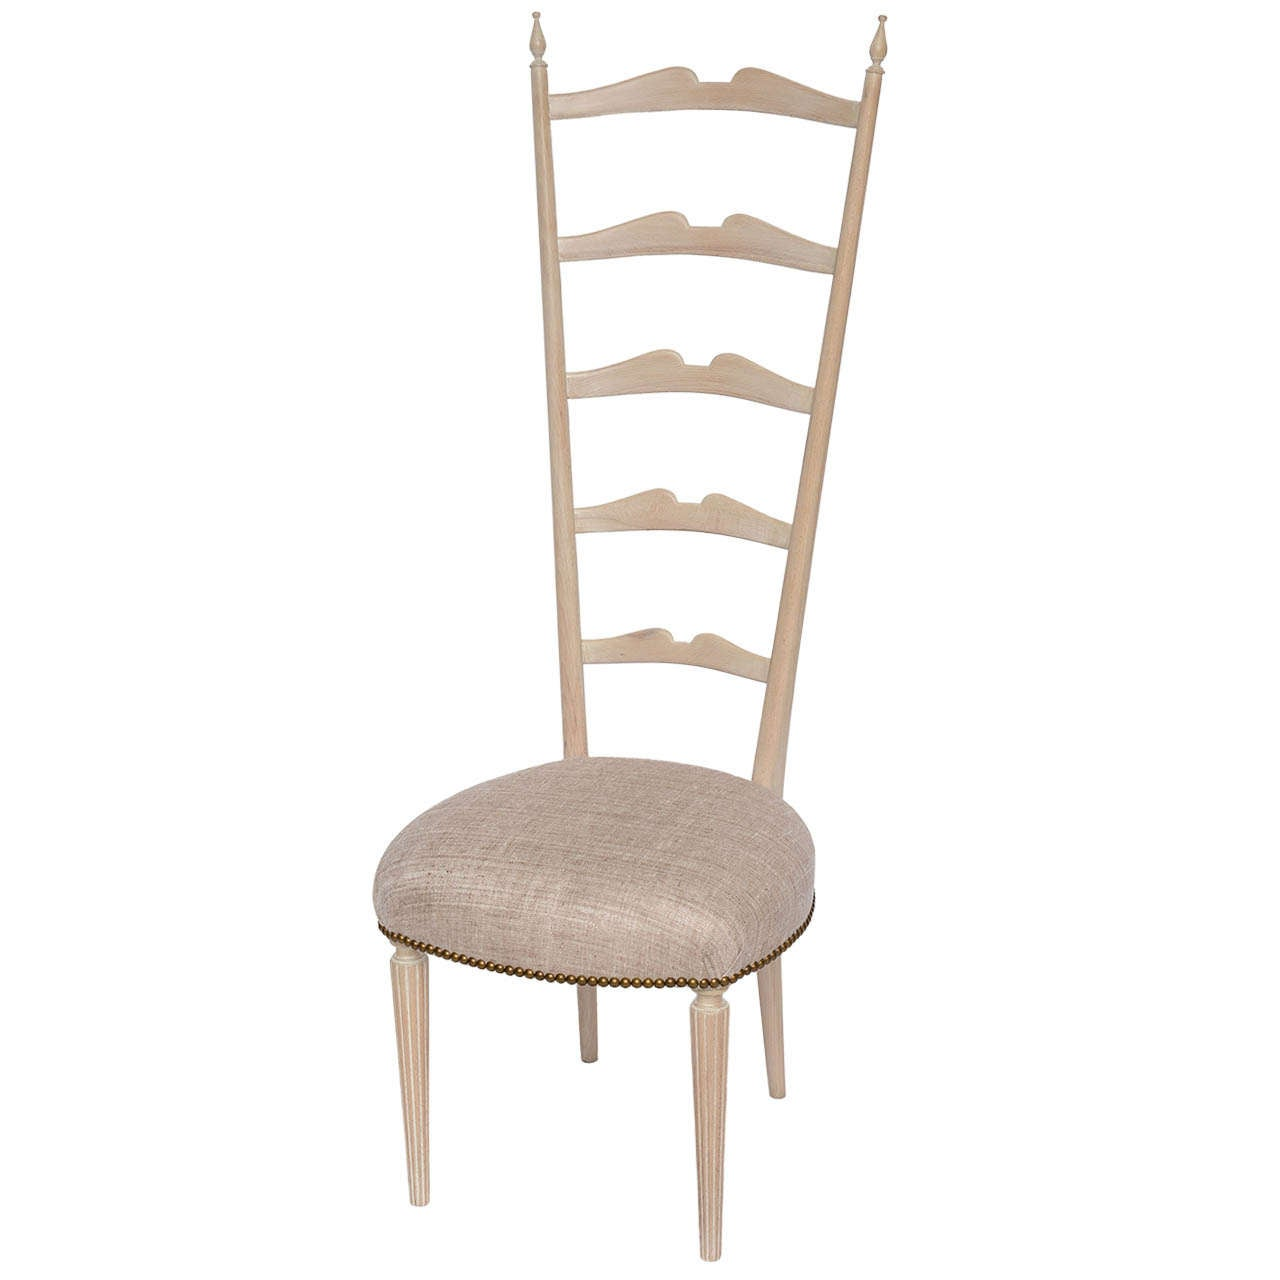 tall desk chairs with backs horse rocking chair plans 50 39s italian ladder back for sale at 1stdibs